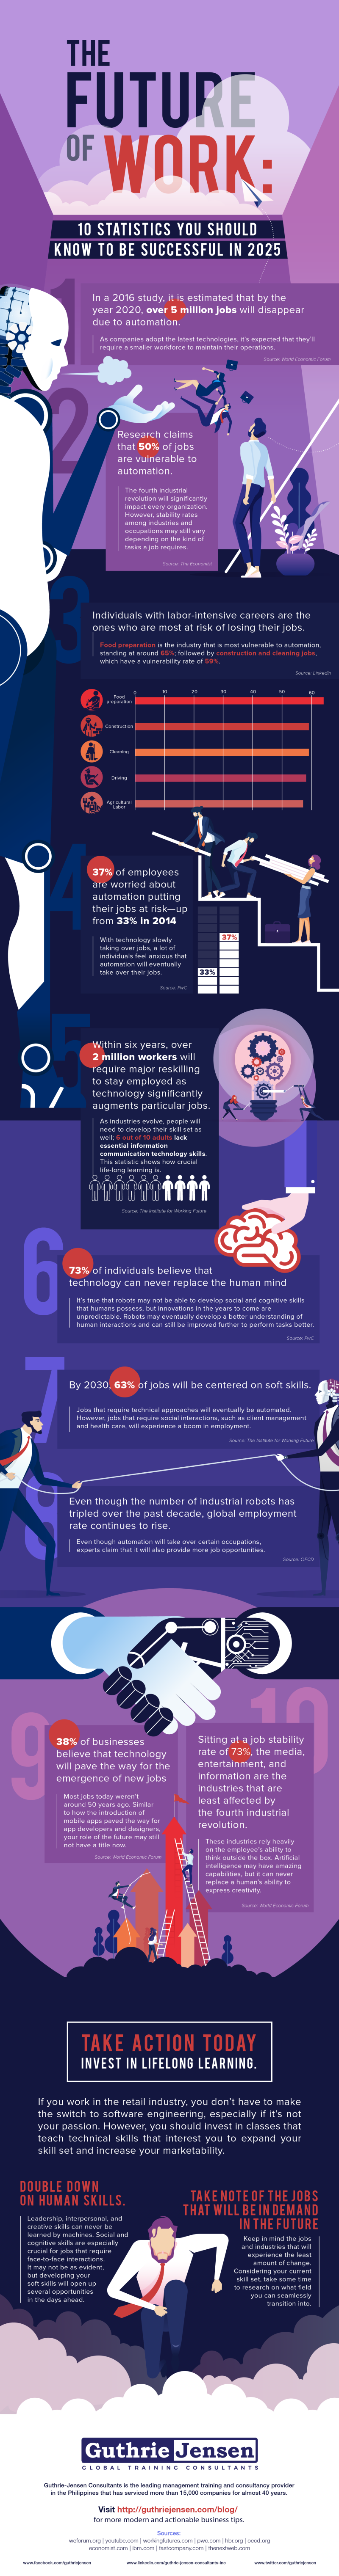 The Future of Work: 10 Statistics You Should Know to Be Successful in 2025 [Infographic]